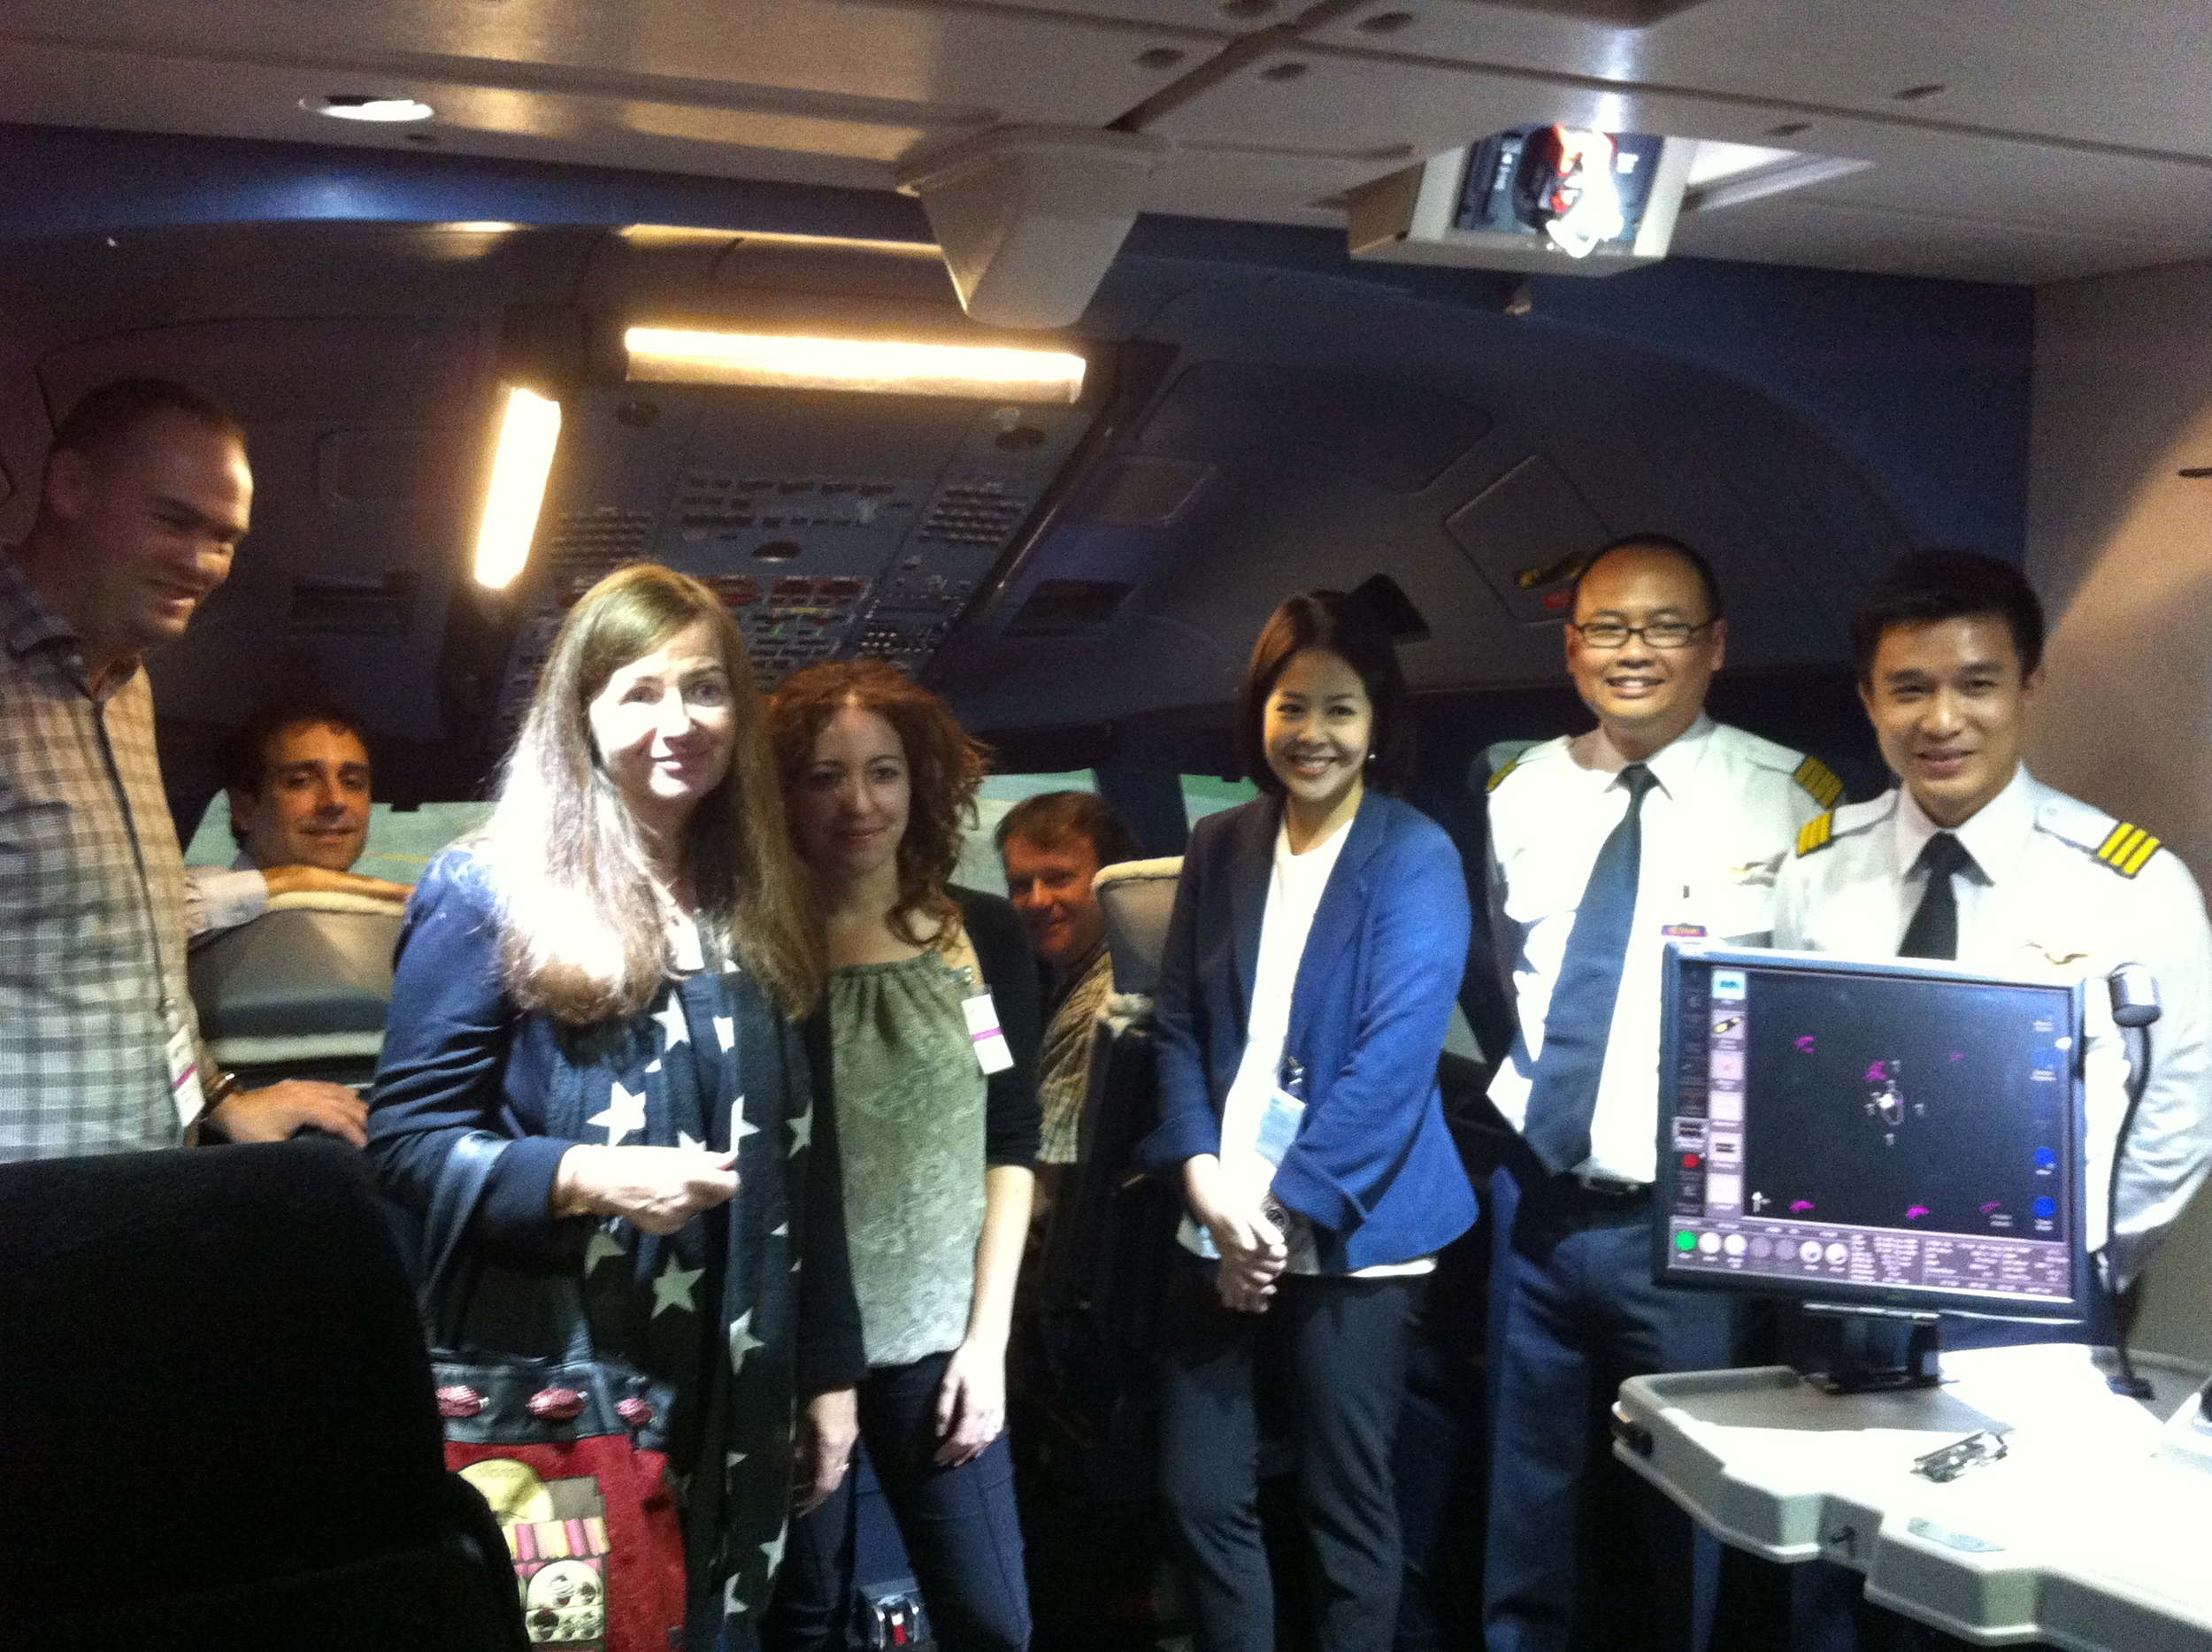 The crew for this special flight